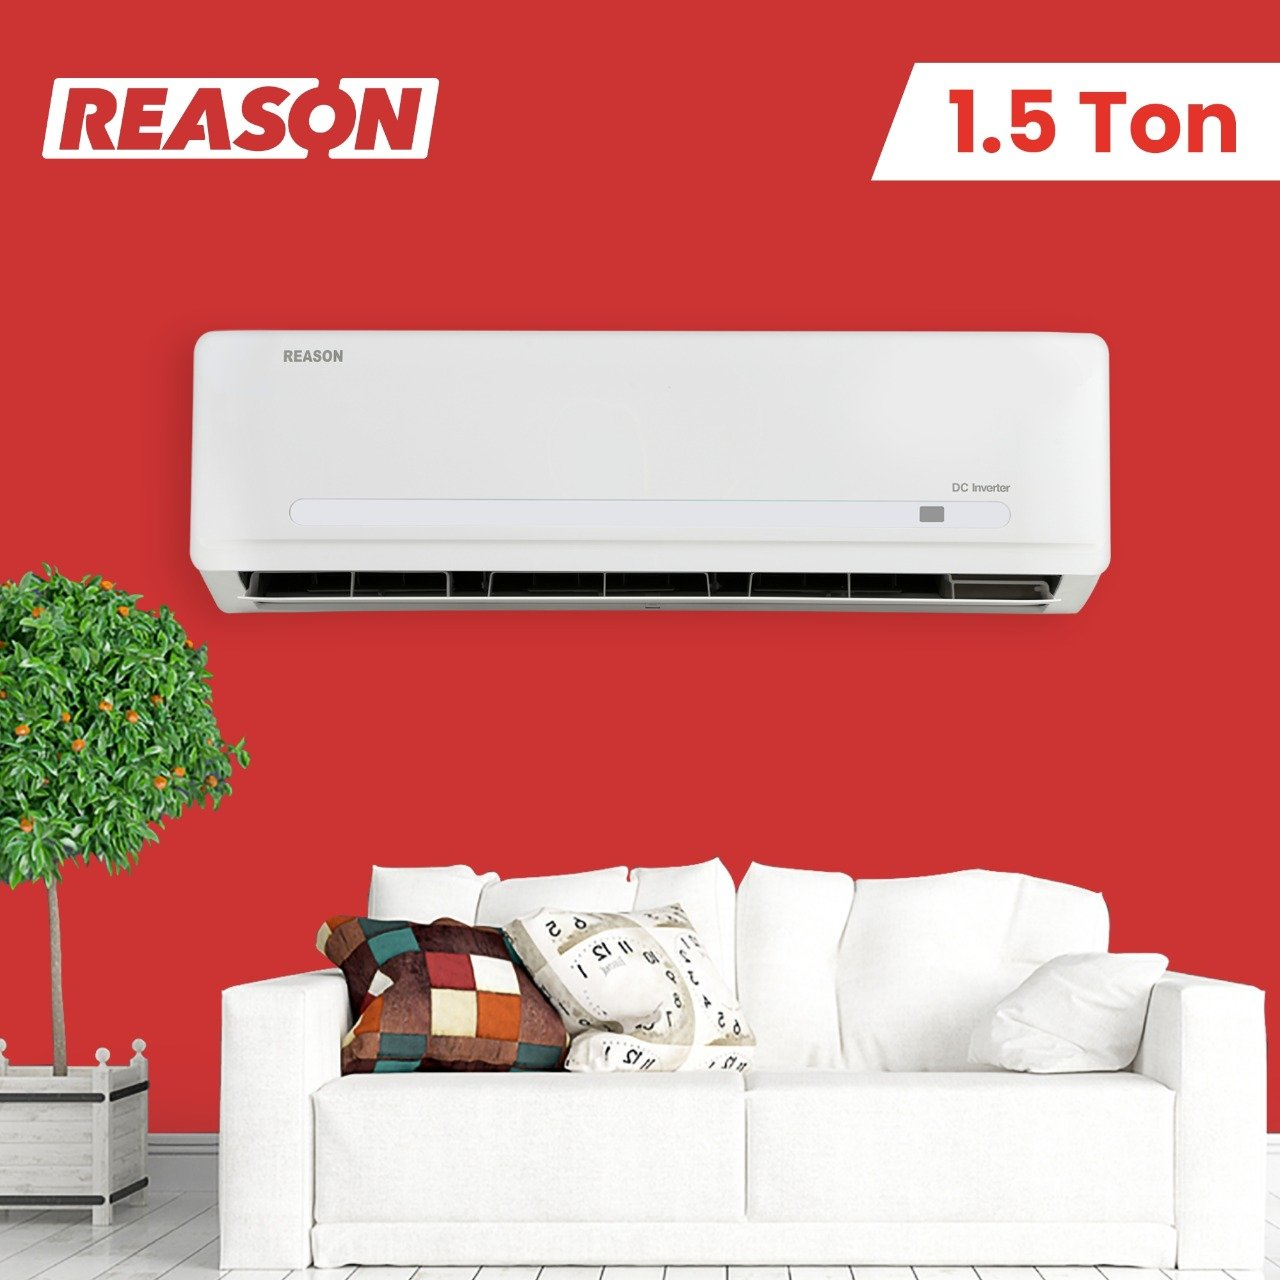 Reason 1.5 Ton Air Conditioner - With in-built WiFi Kit